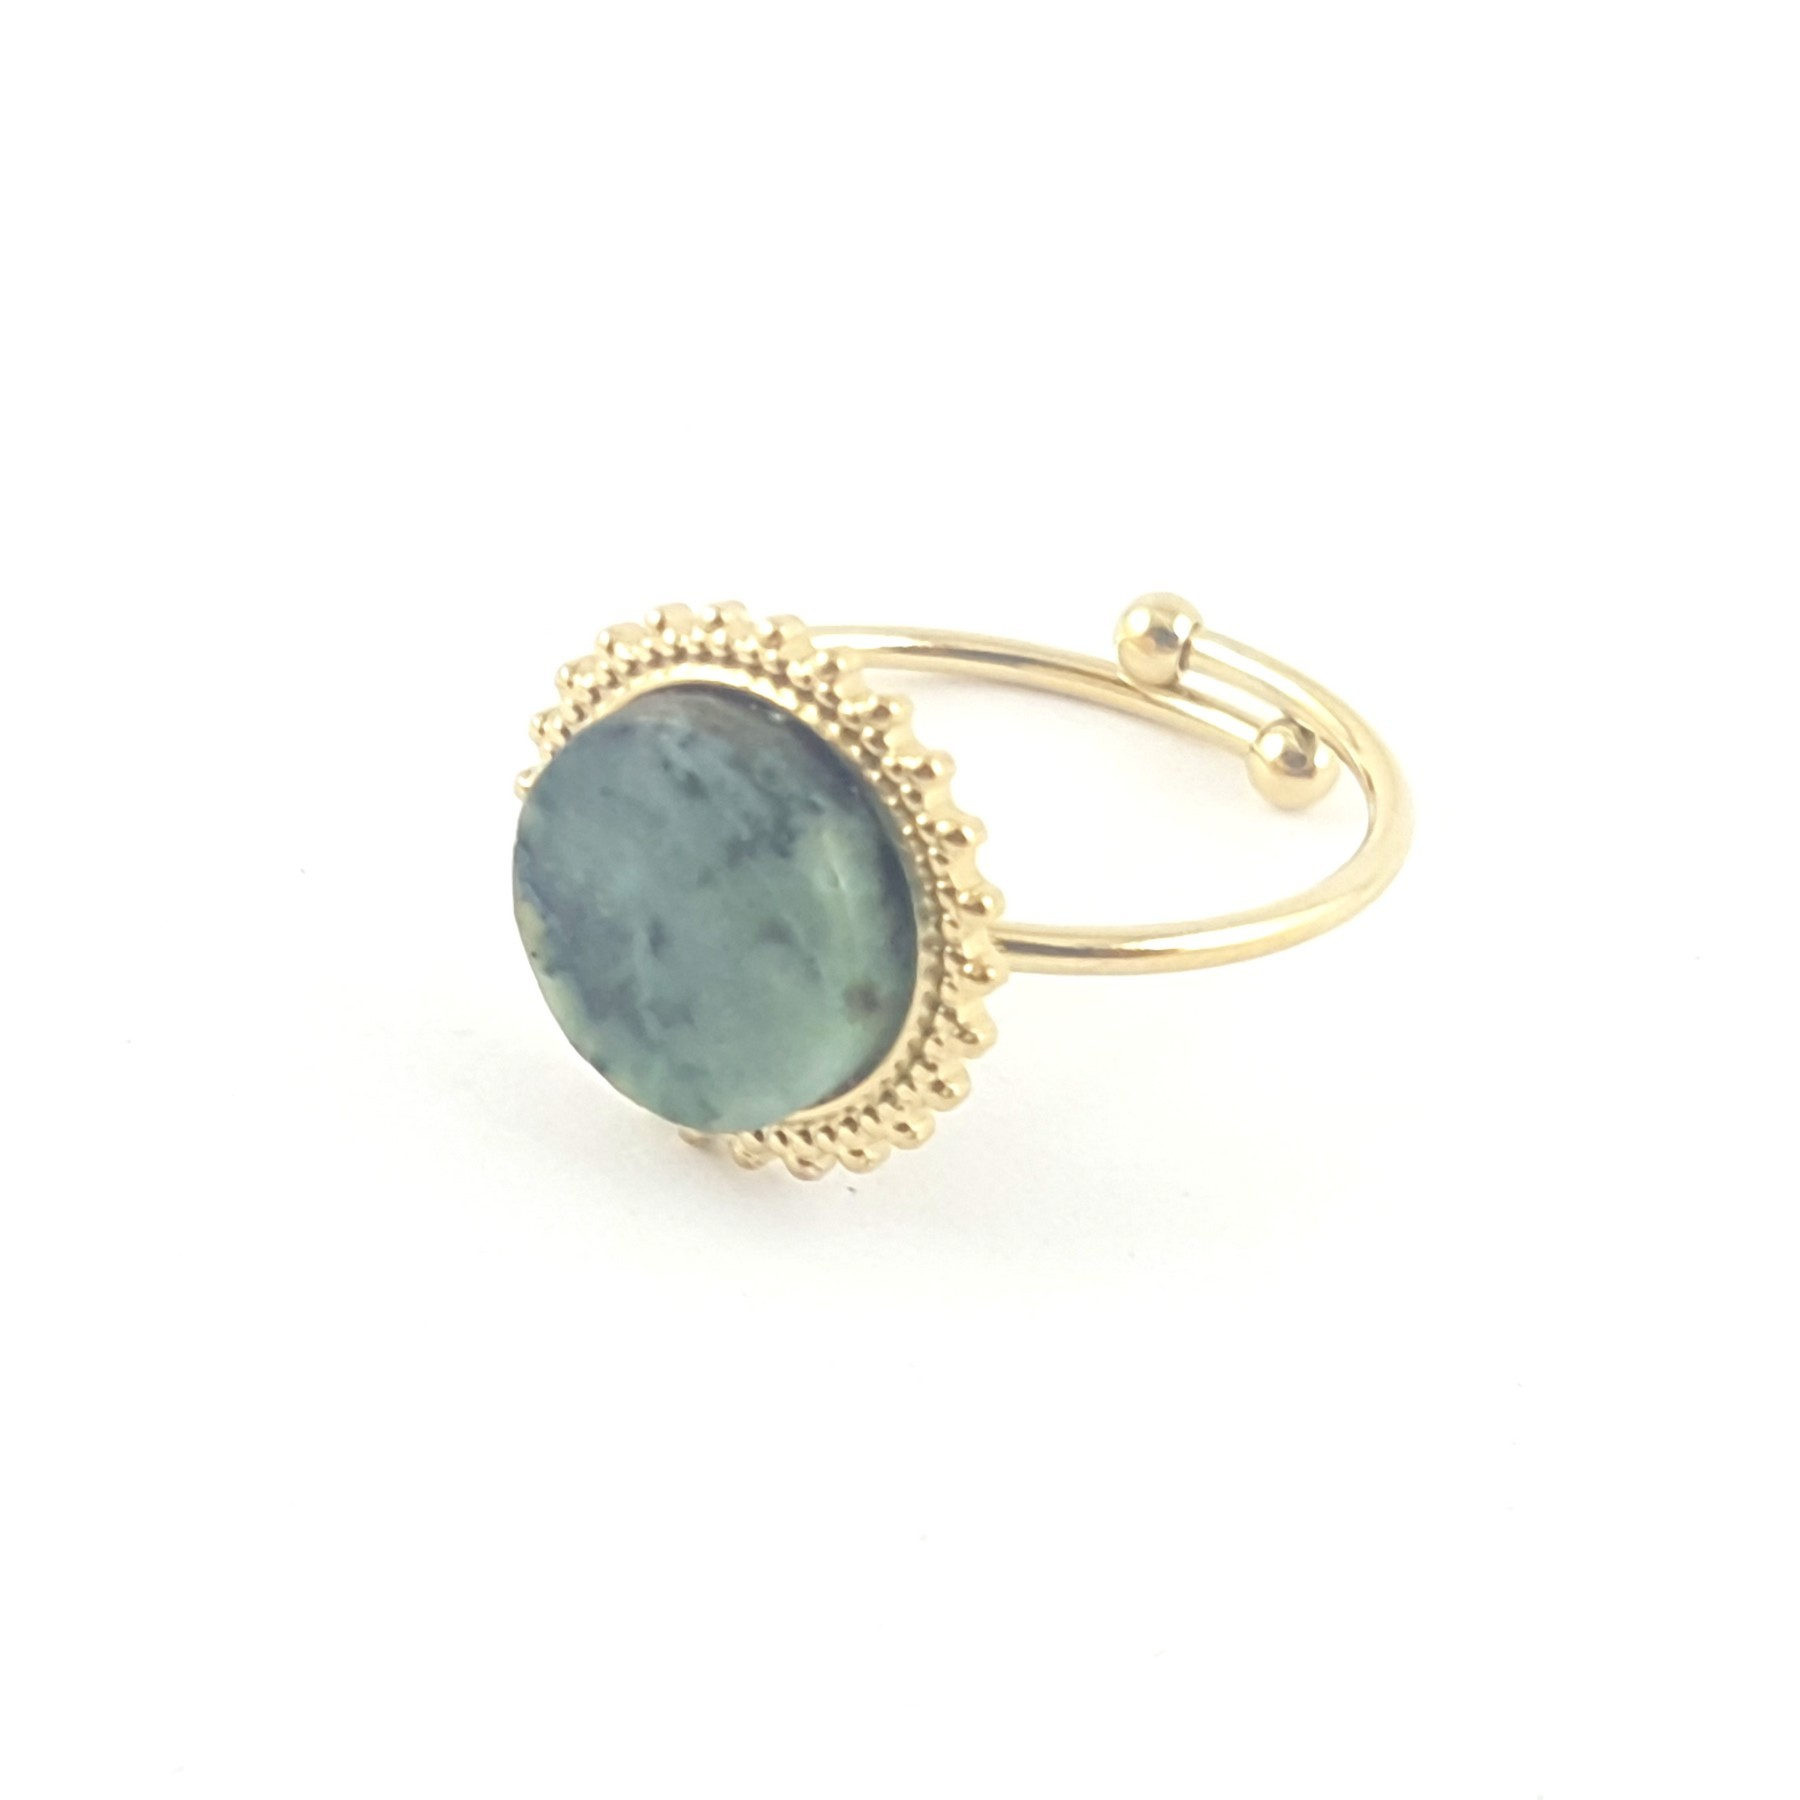 Bague soleil turquoise africaine